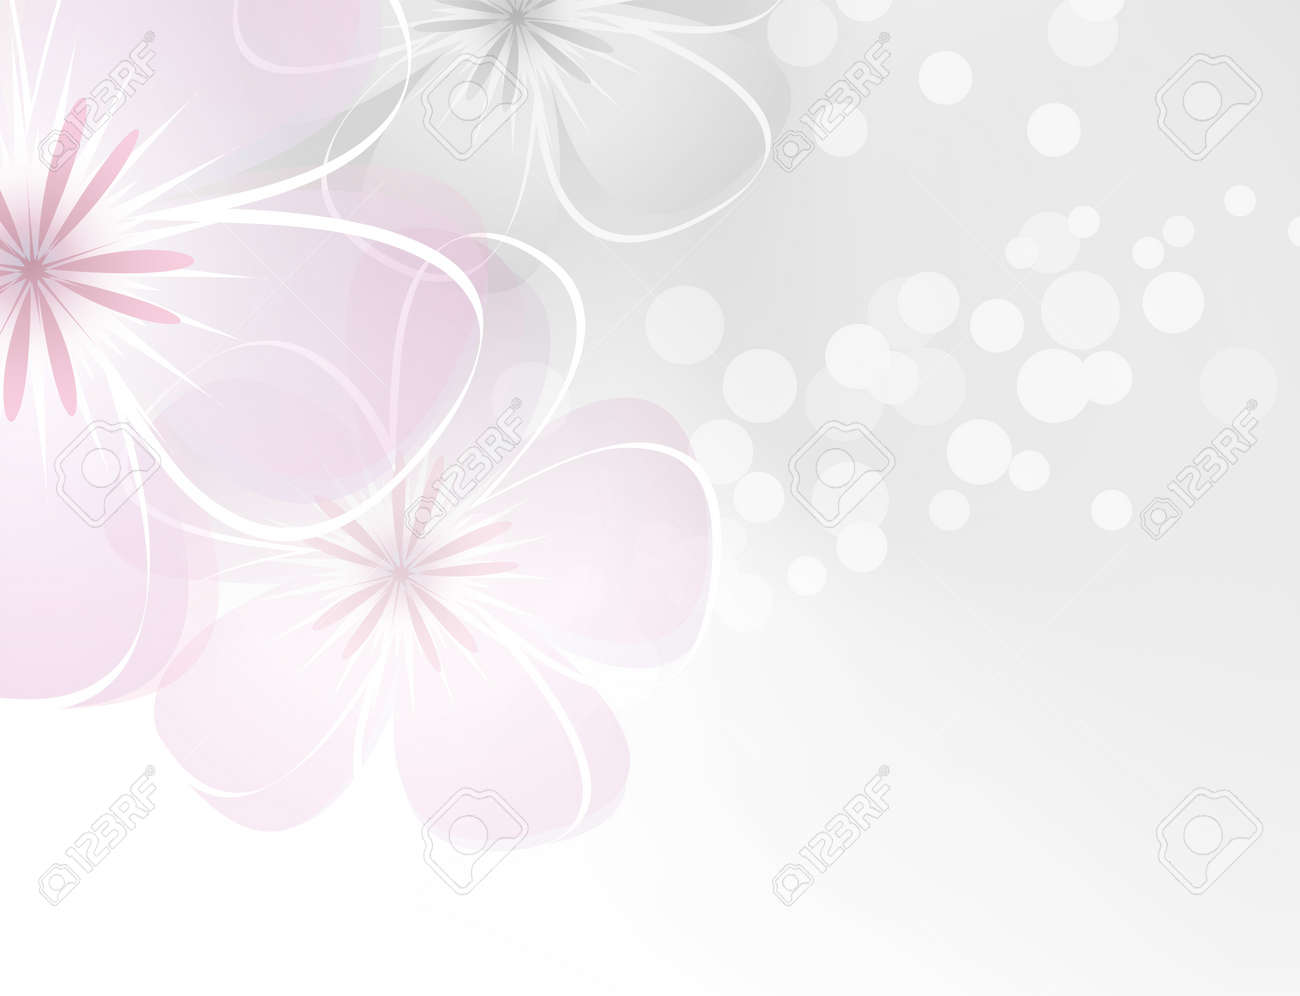 Pink White Flower Design Against Grey Background Royalty Free